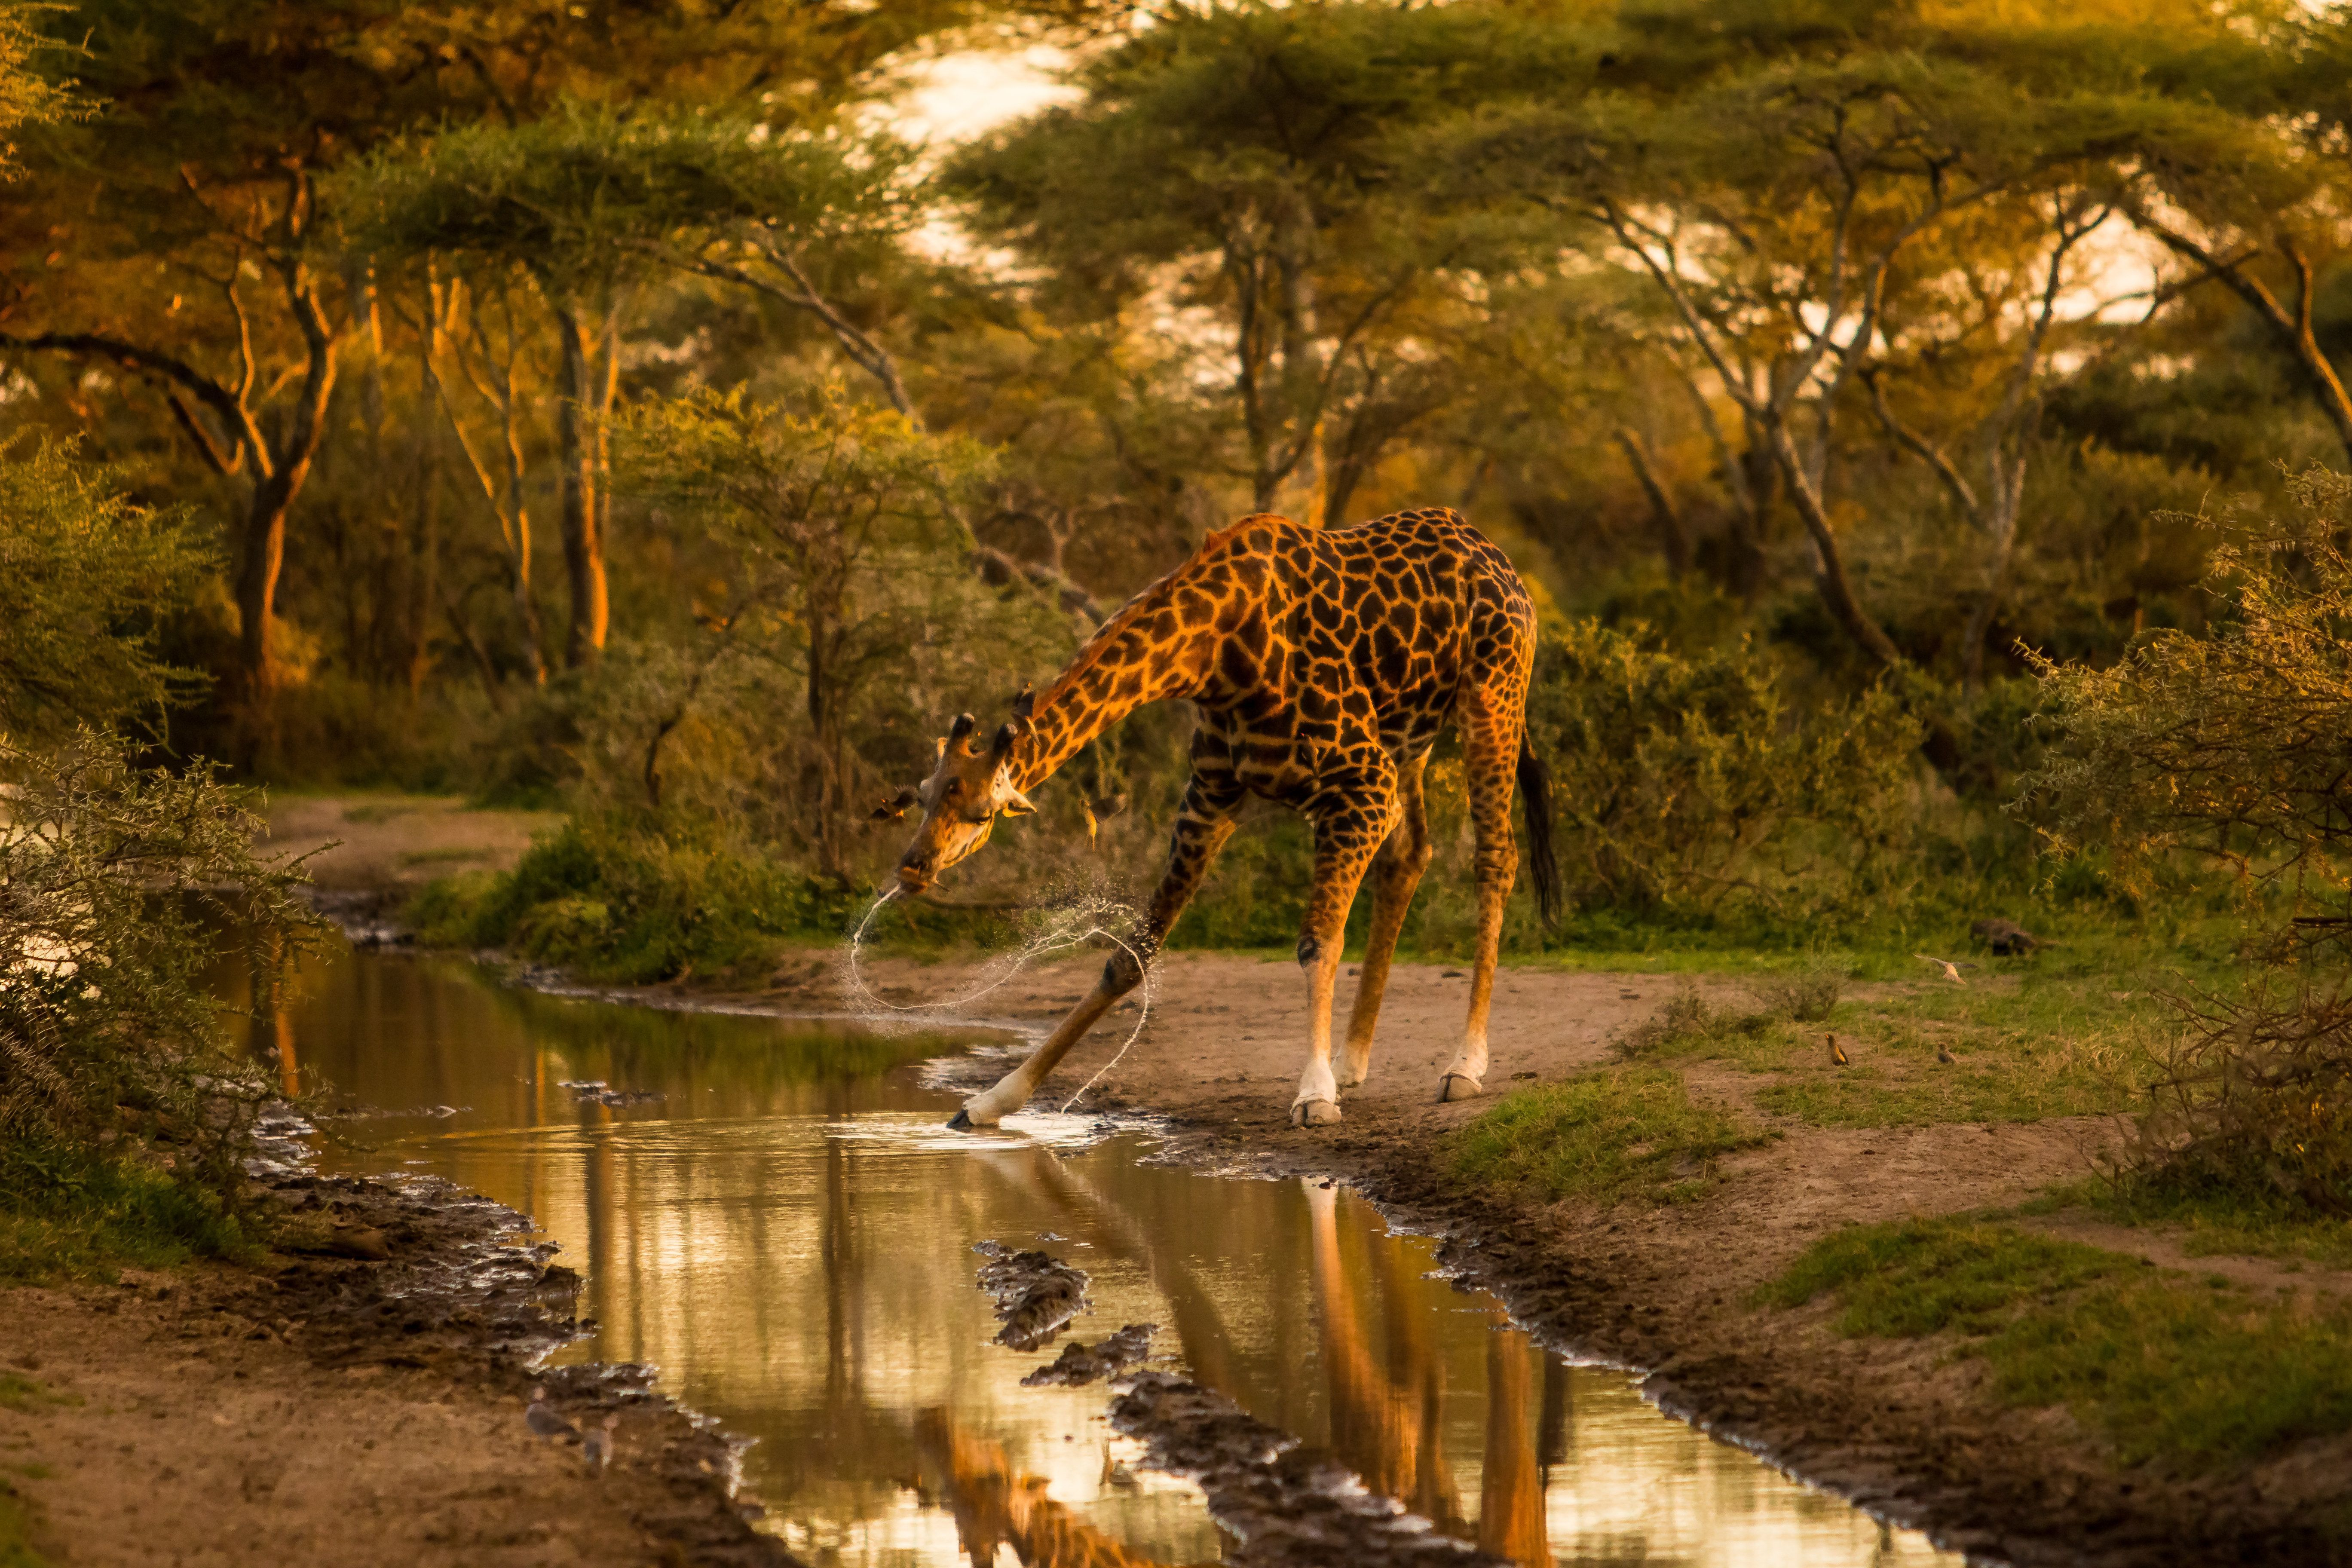 Drinking Giraffe Image National Geographic Your Shot Photo Of The Day National Geographic Animals National Geographic Photography Giraffe Images